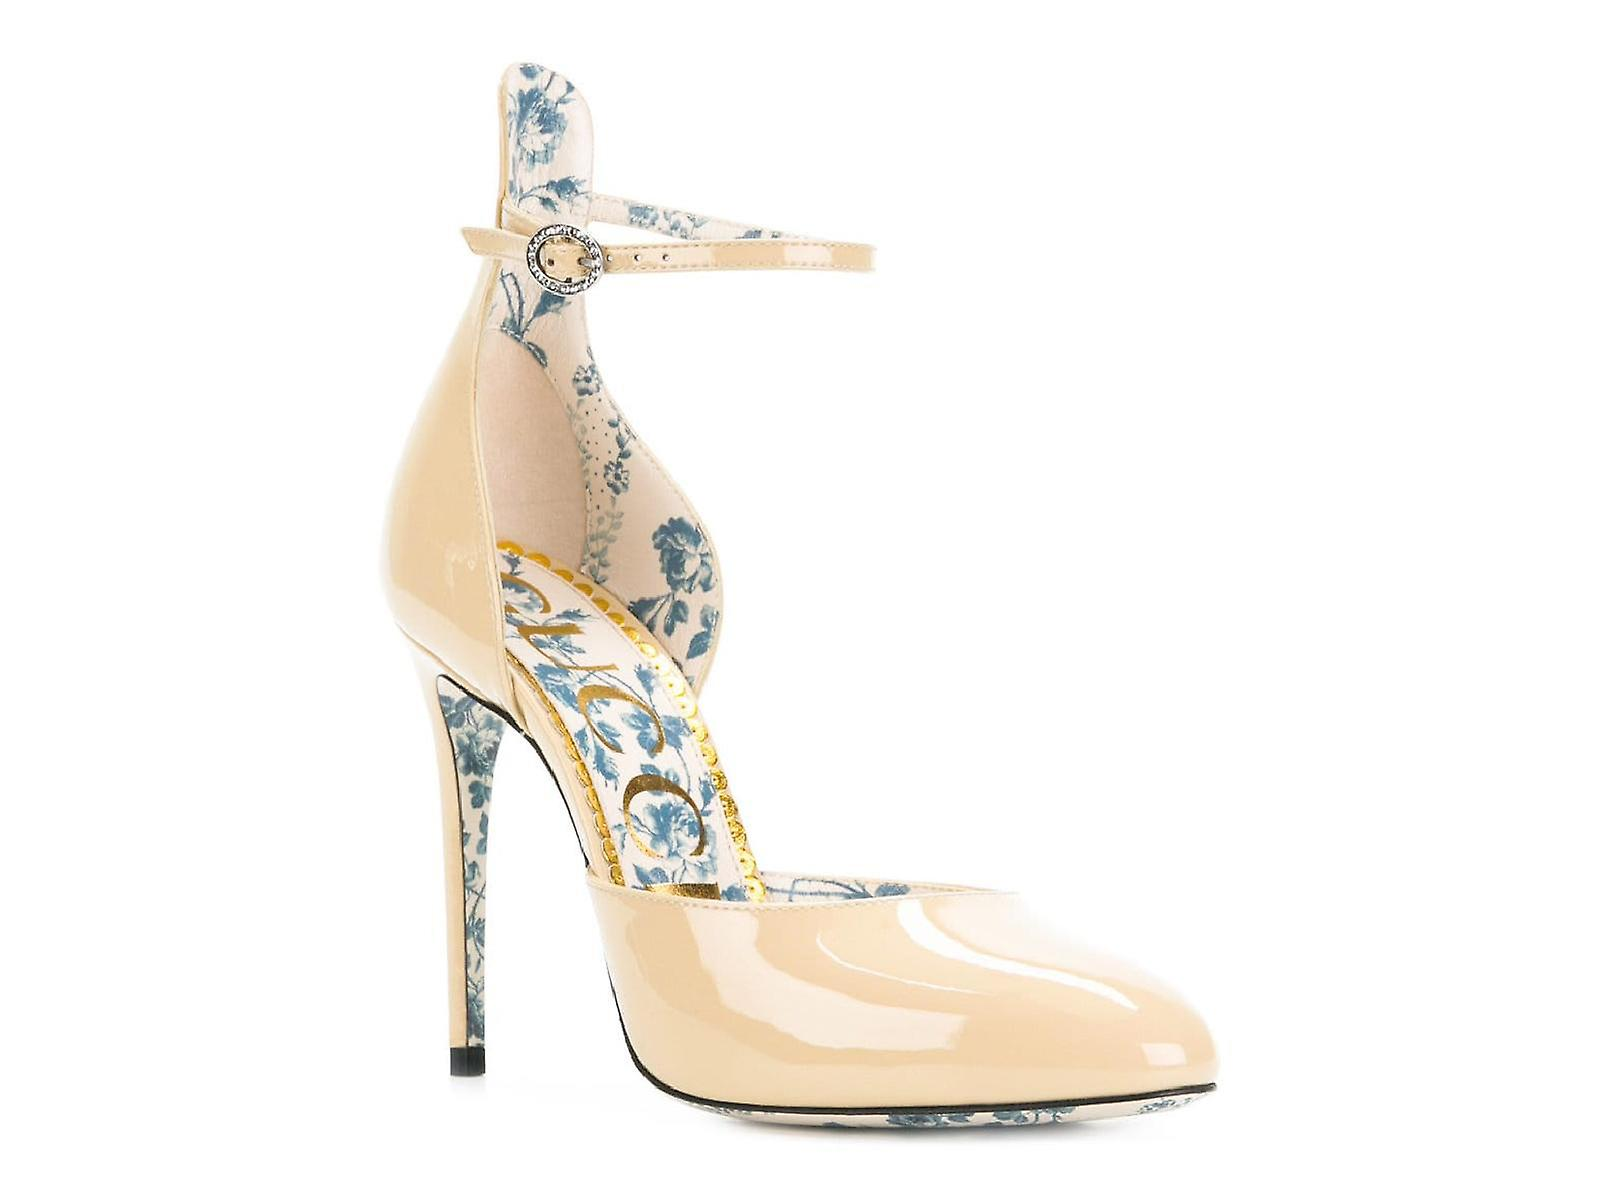 Gucci high heels pumps shoes in sand